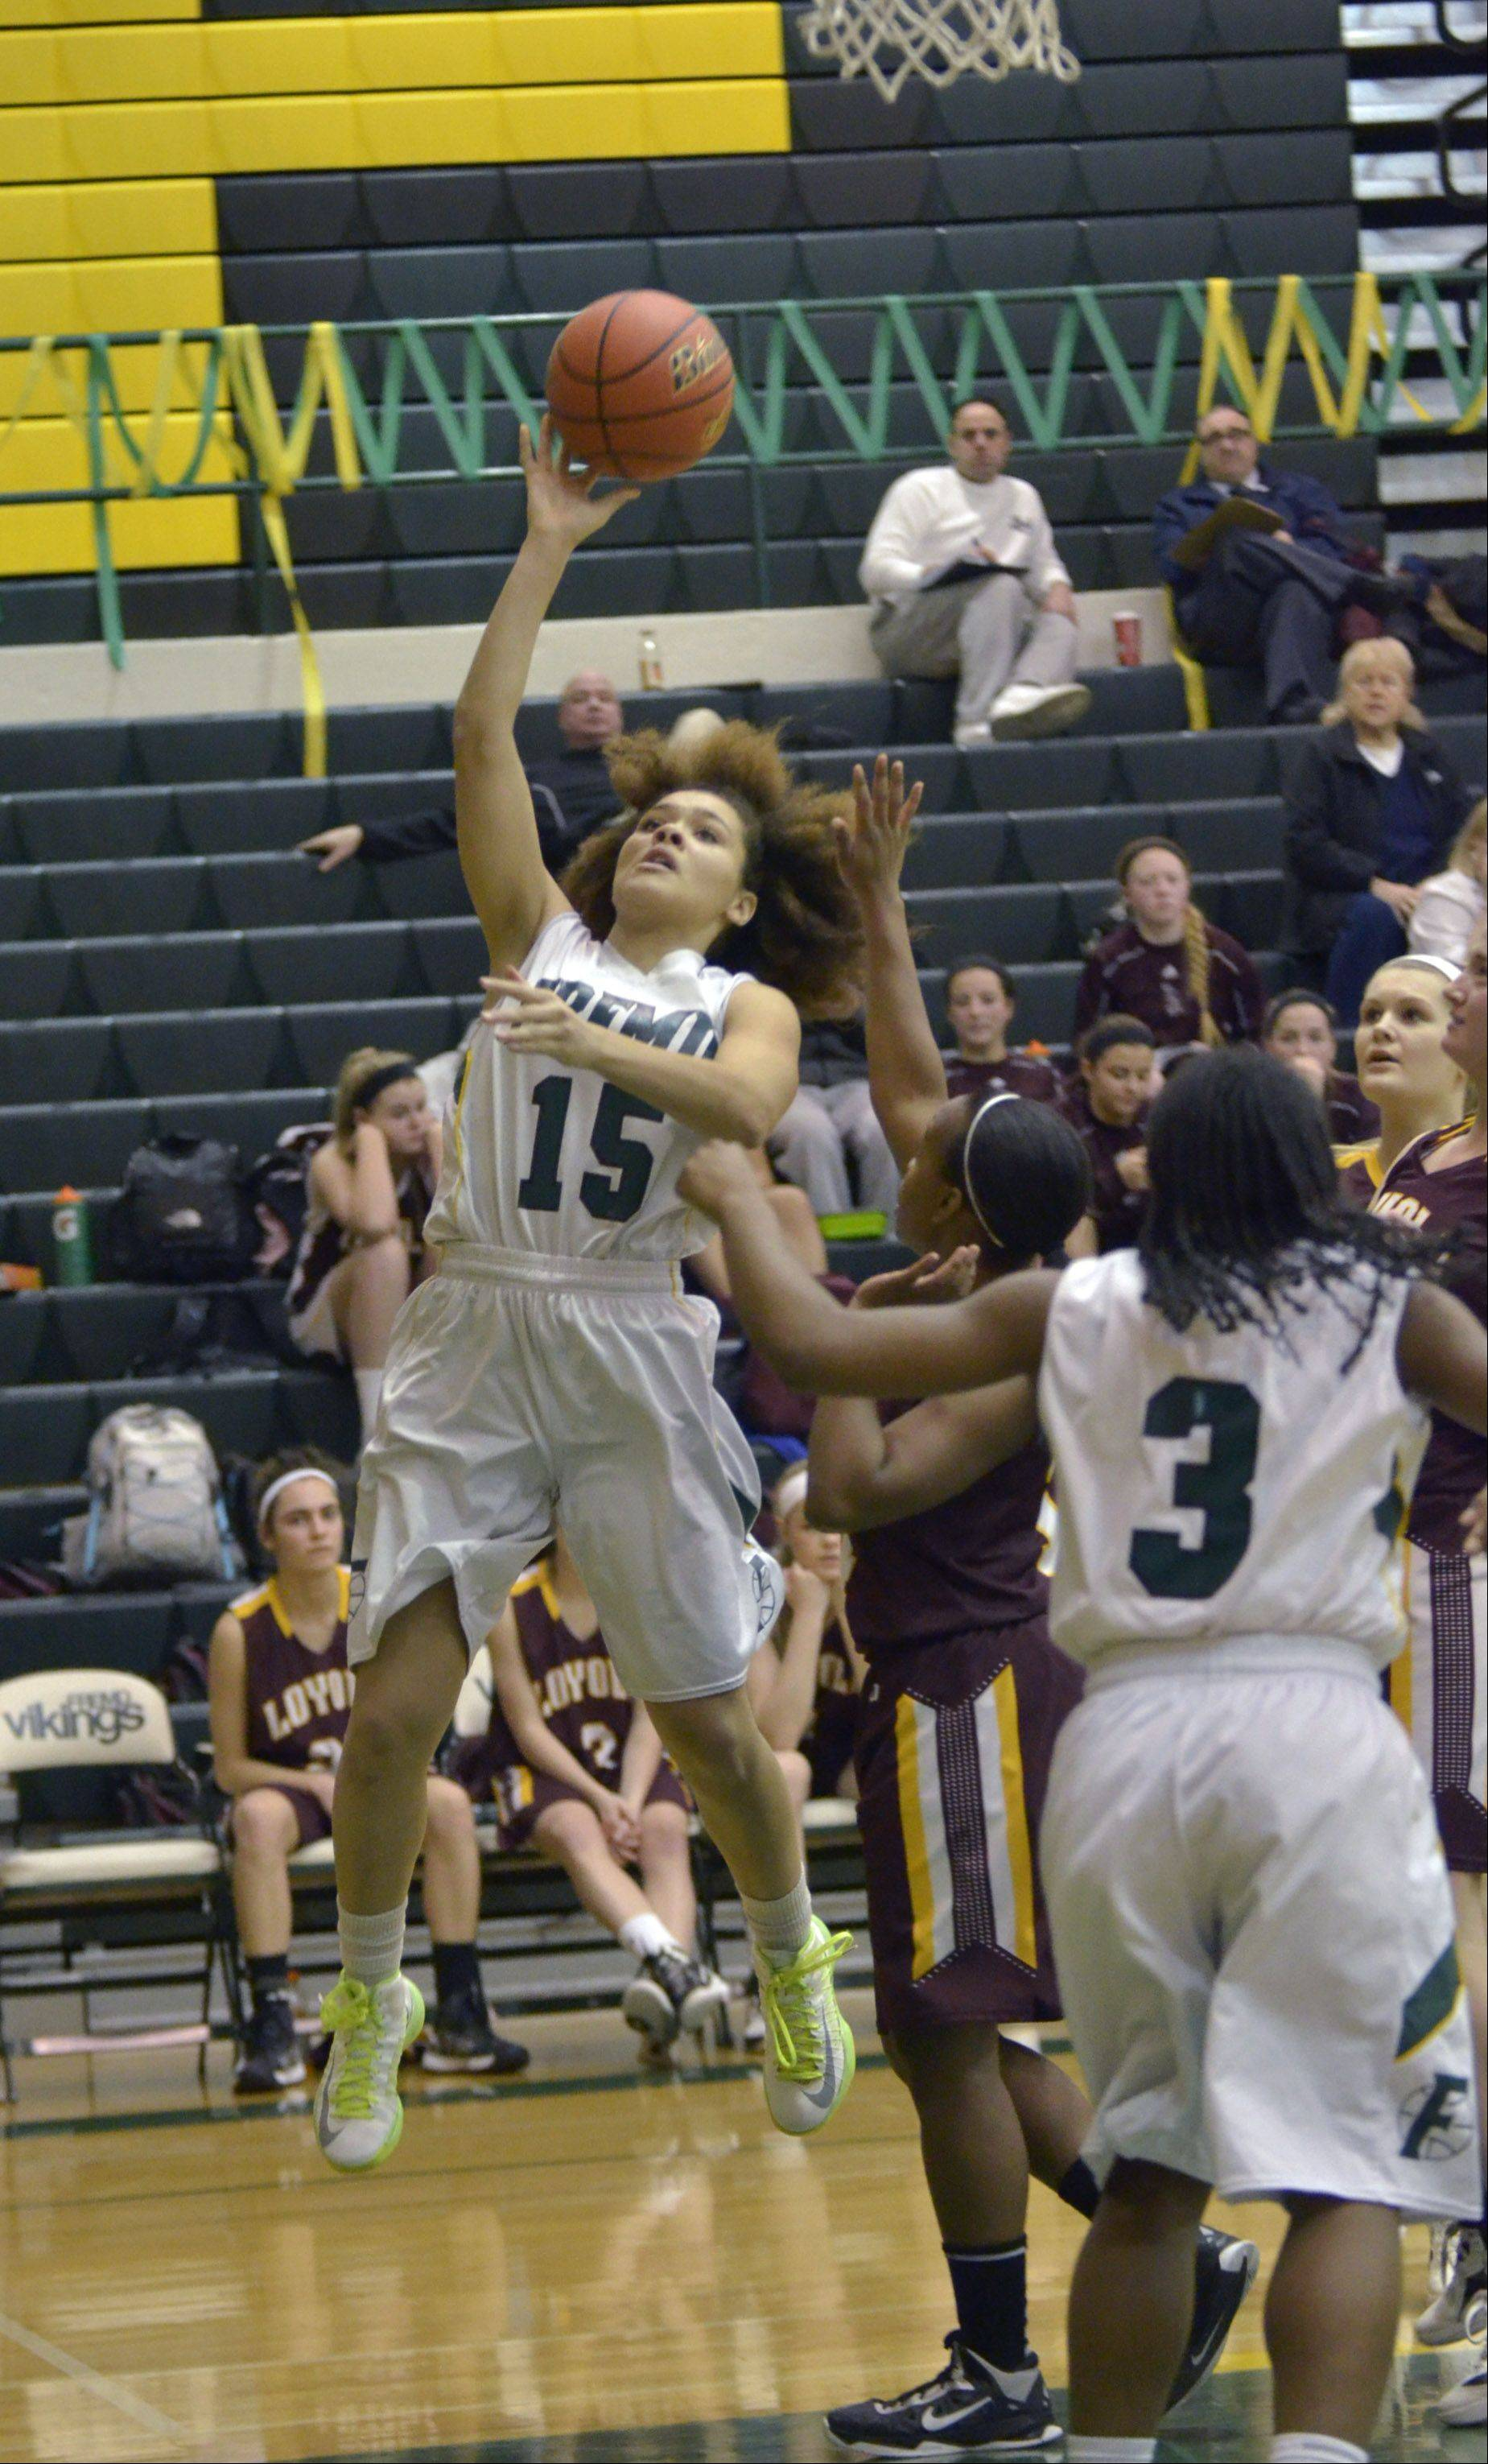 Images from the Fremd vs. Loyola girls basketball game on Monday, January 14th, in Palatine.